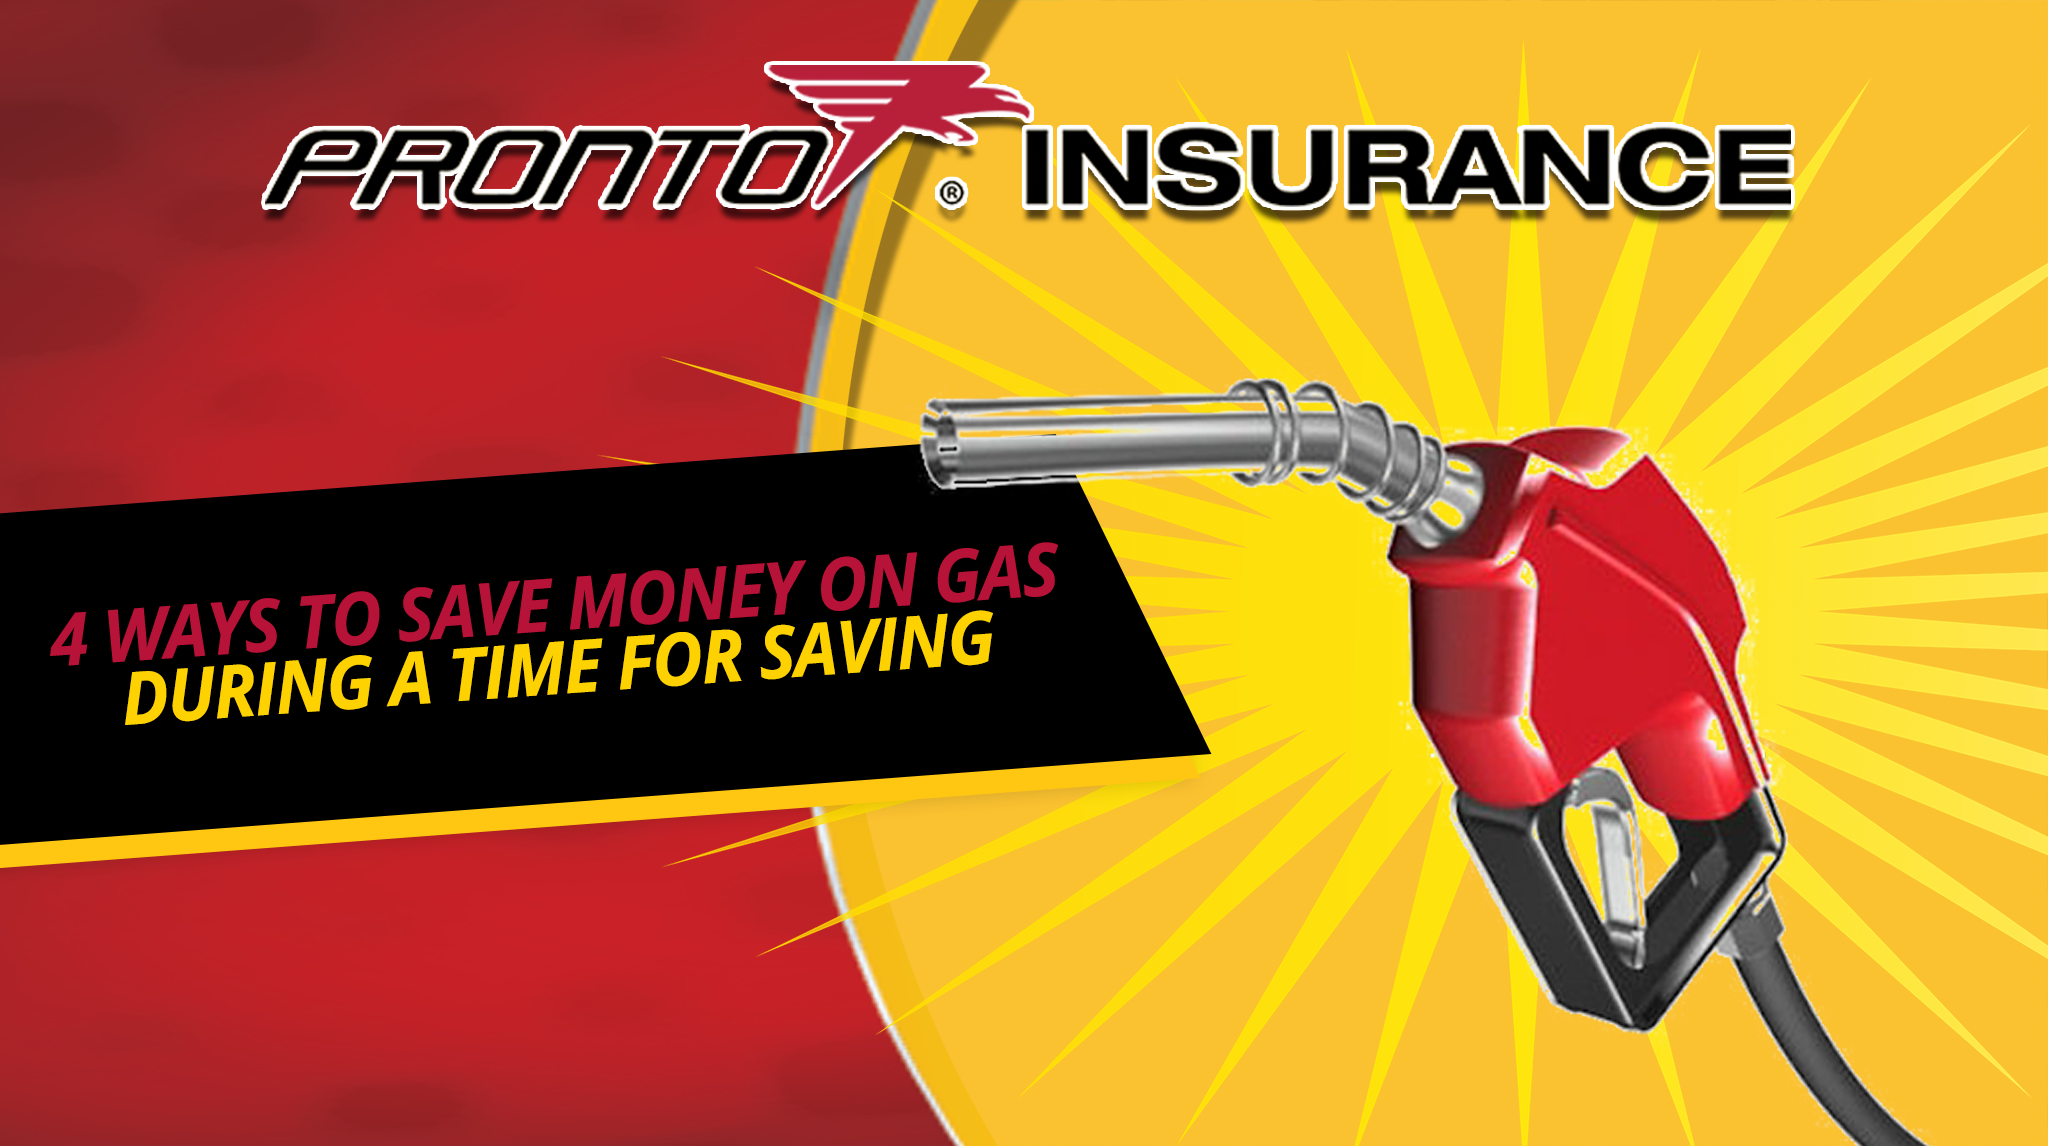 4 Ways to Save Money on Gas During a Time for Saving